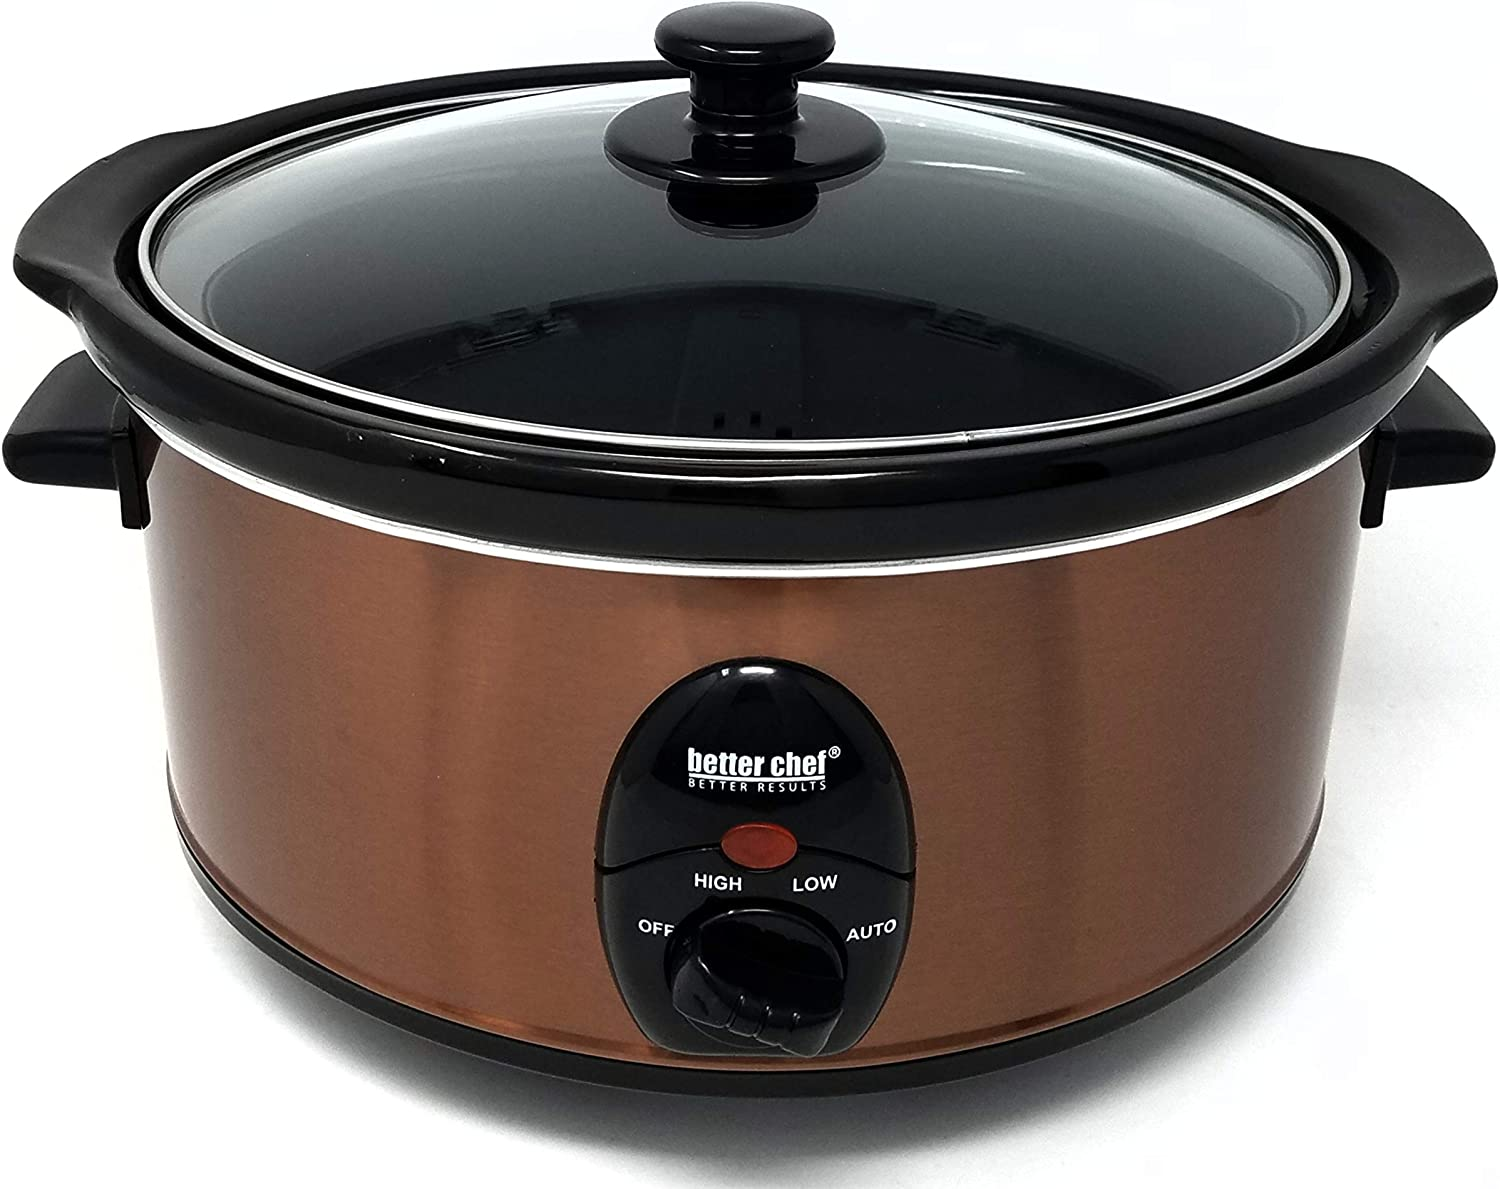 BETTER CHEF IMPRESS IM-456C 3.5 COPPER LITER SLOW META sold out COOKER Max 88% OFF